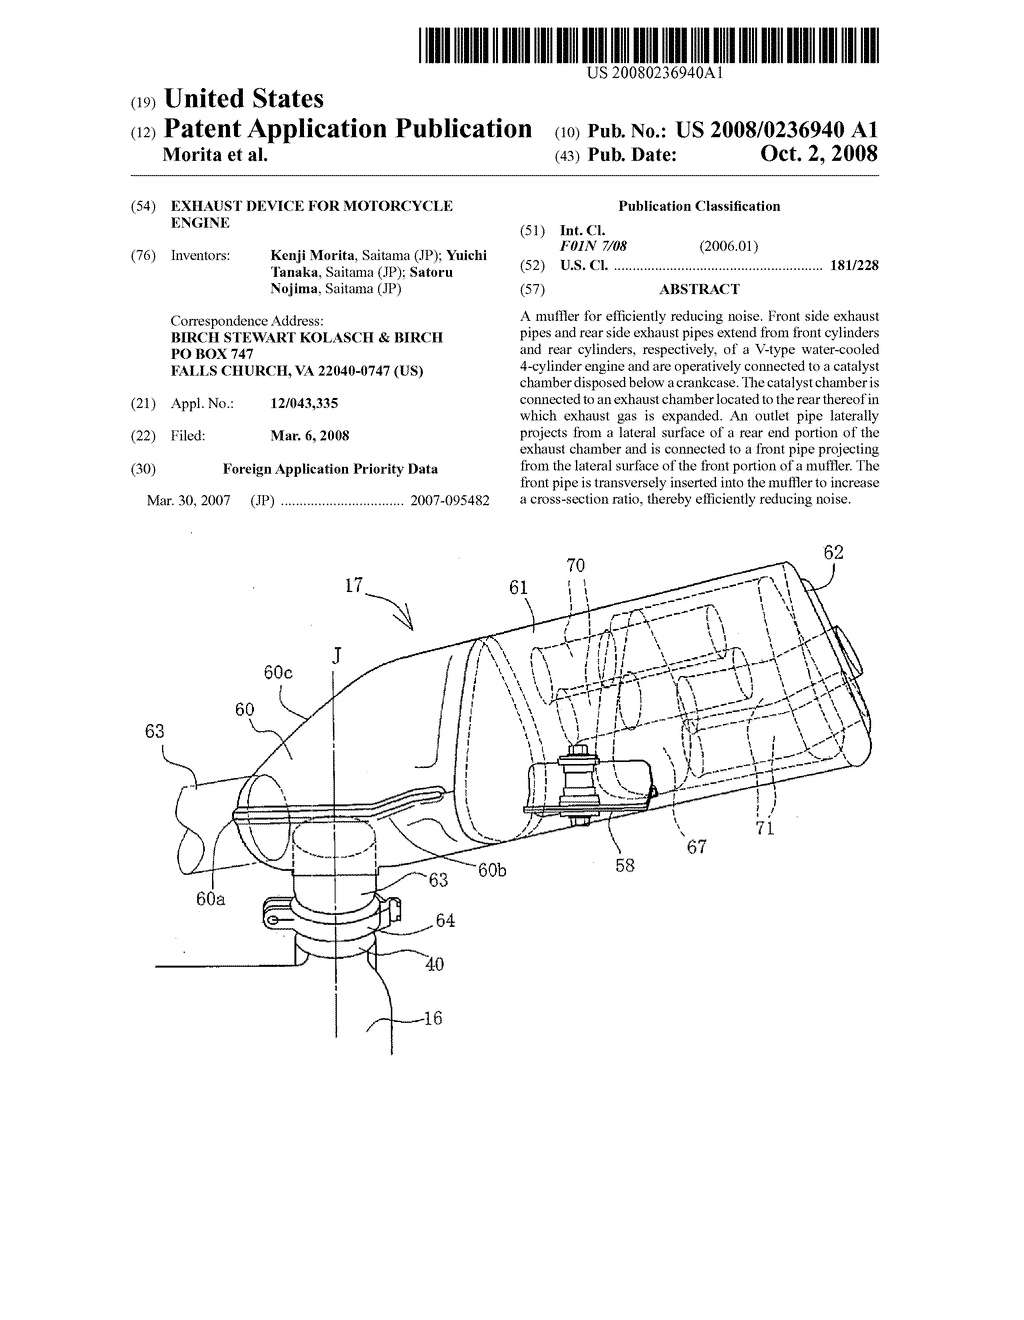 exhaust device for motorcycle engine diagram schematic and image 01